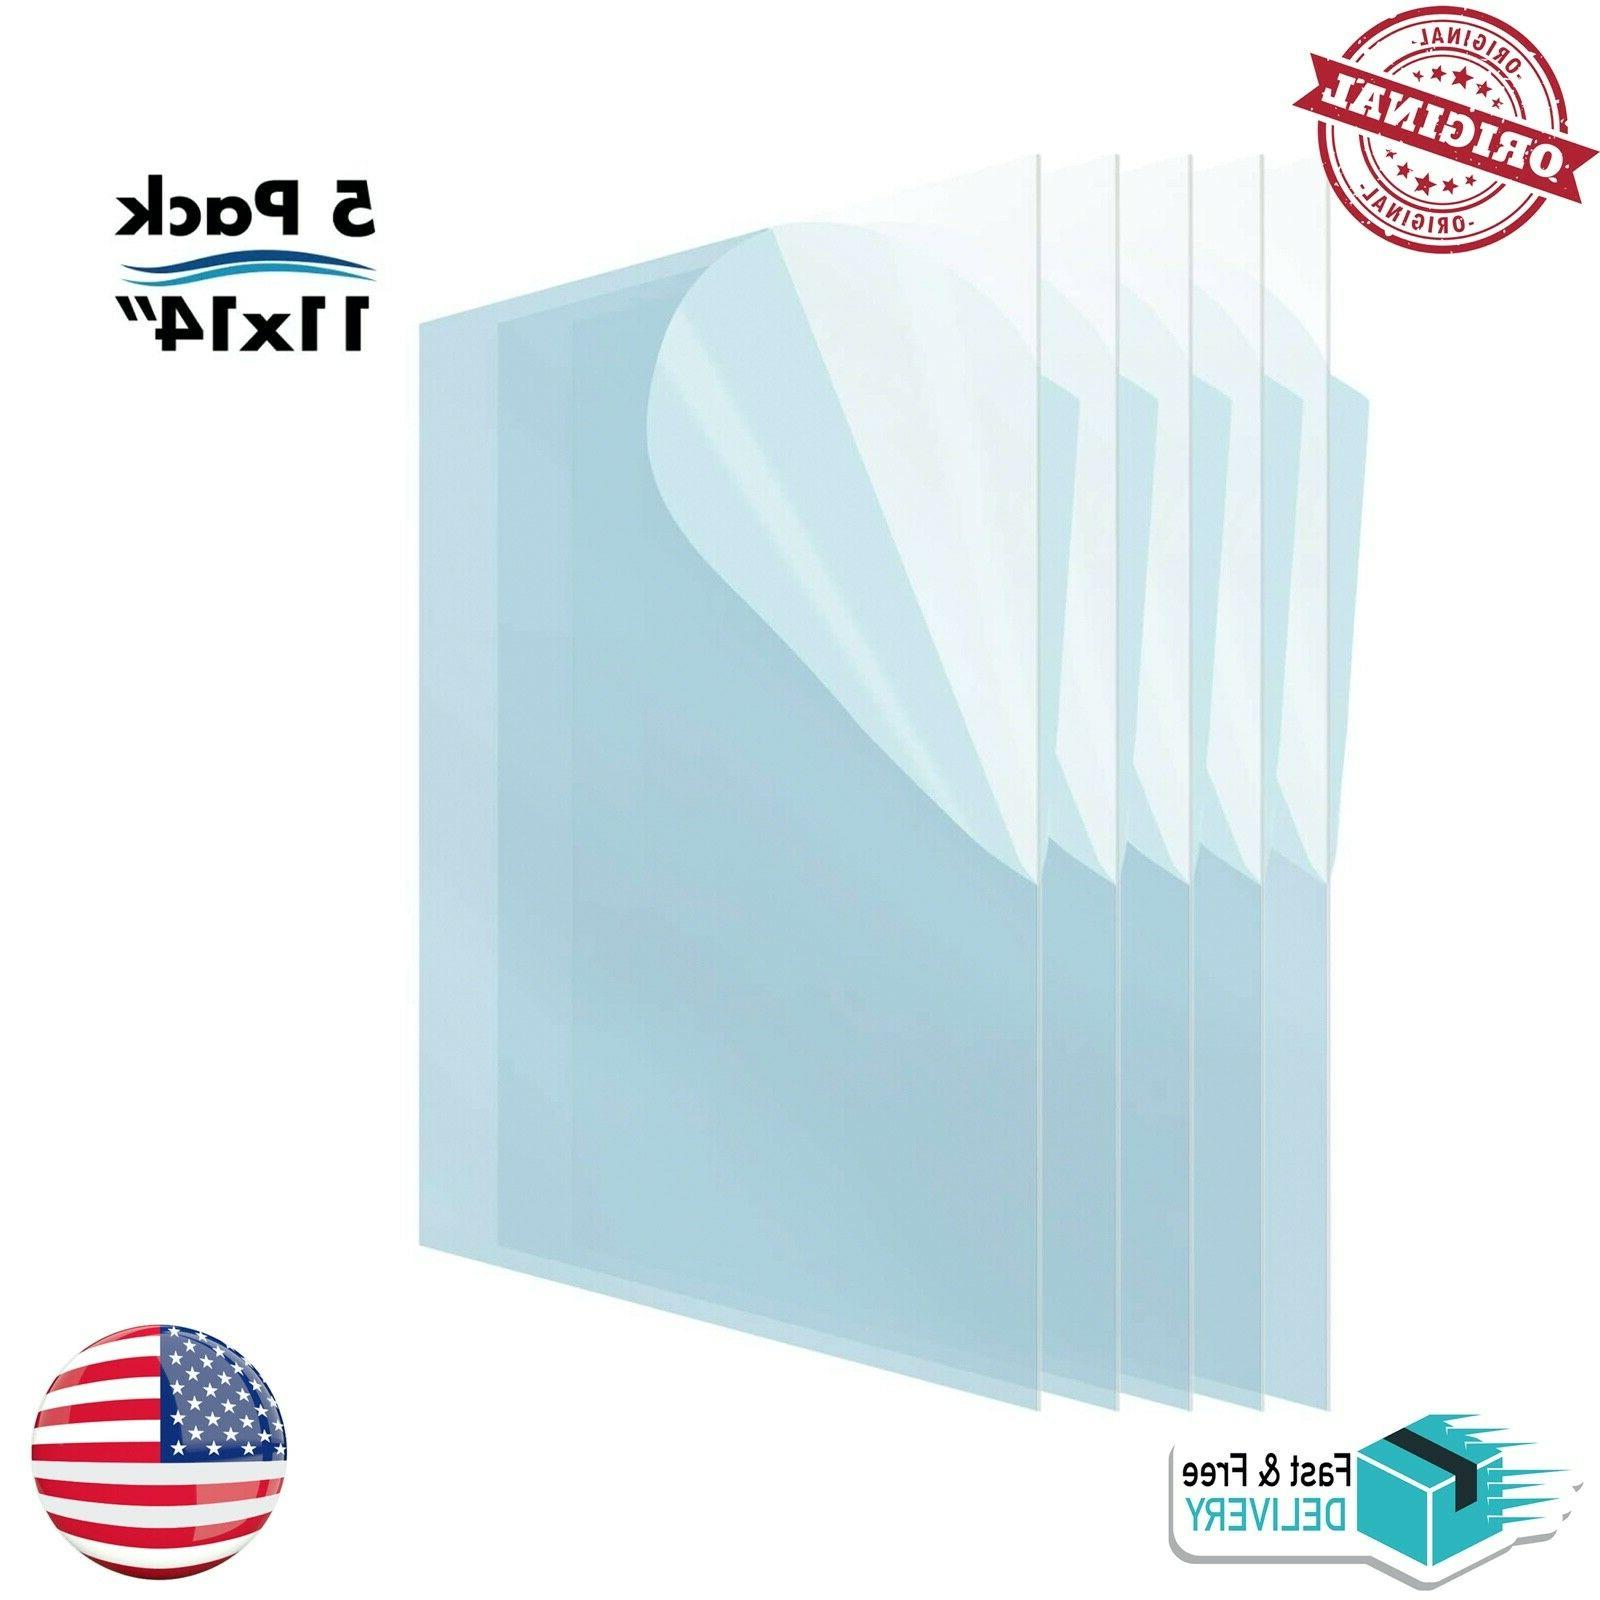 pet plastic replacement for picture frame glass